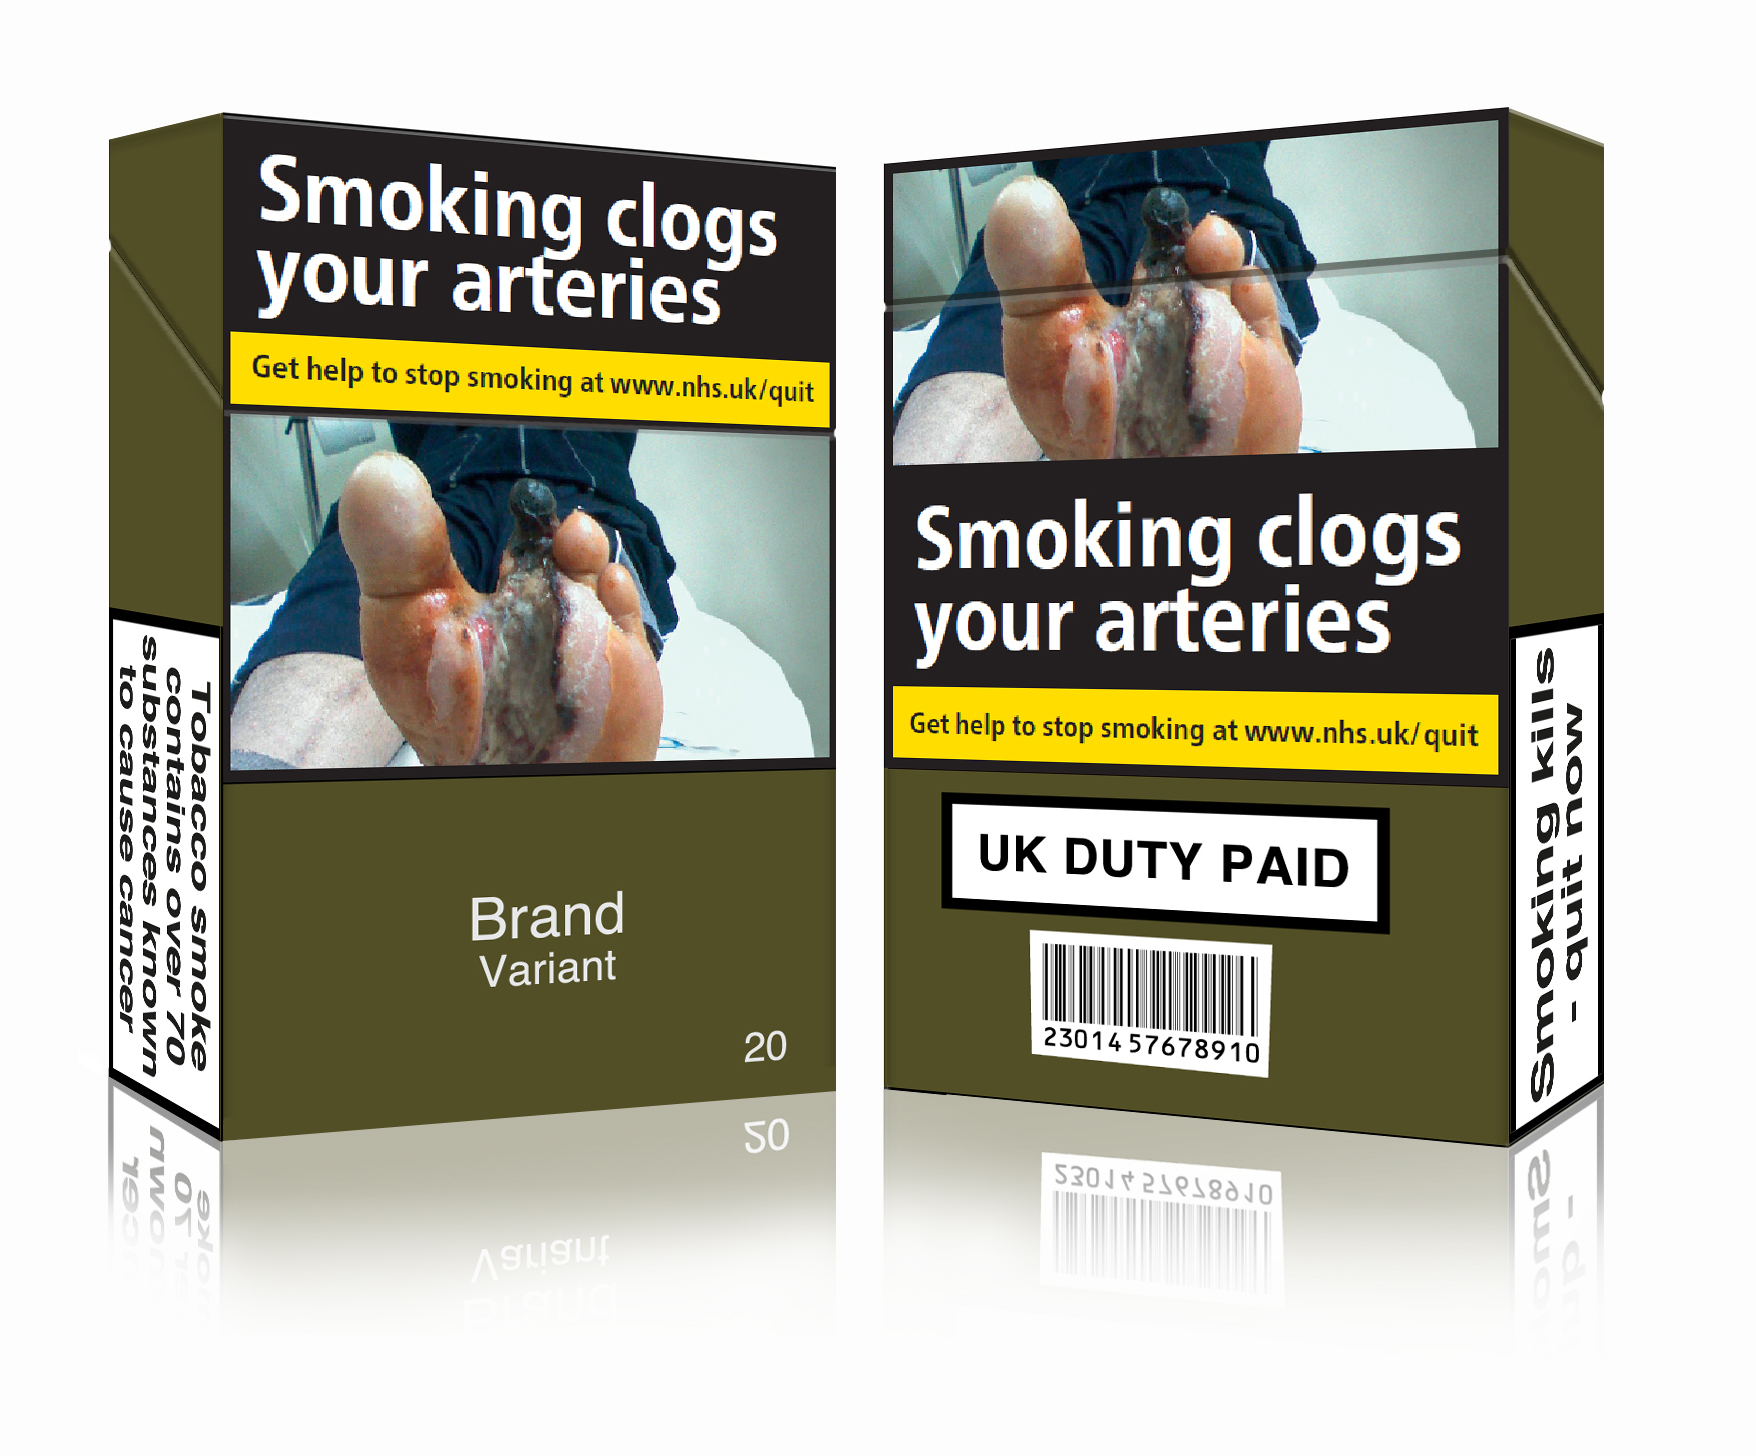 © Action on Smoking and Health. The image conforms to the requirements of the EU Tobacco Products Directive and UK law on standardised packaging.